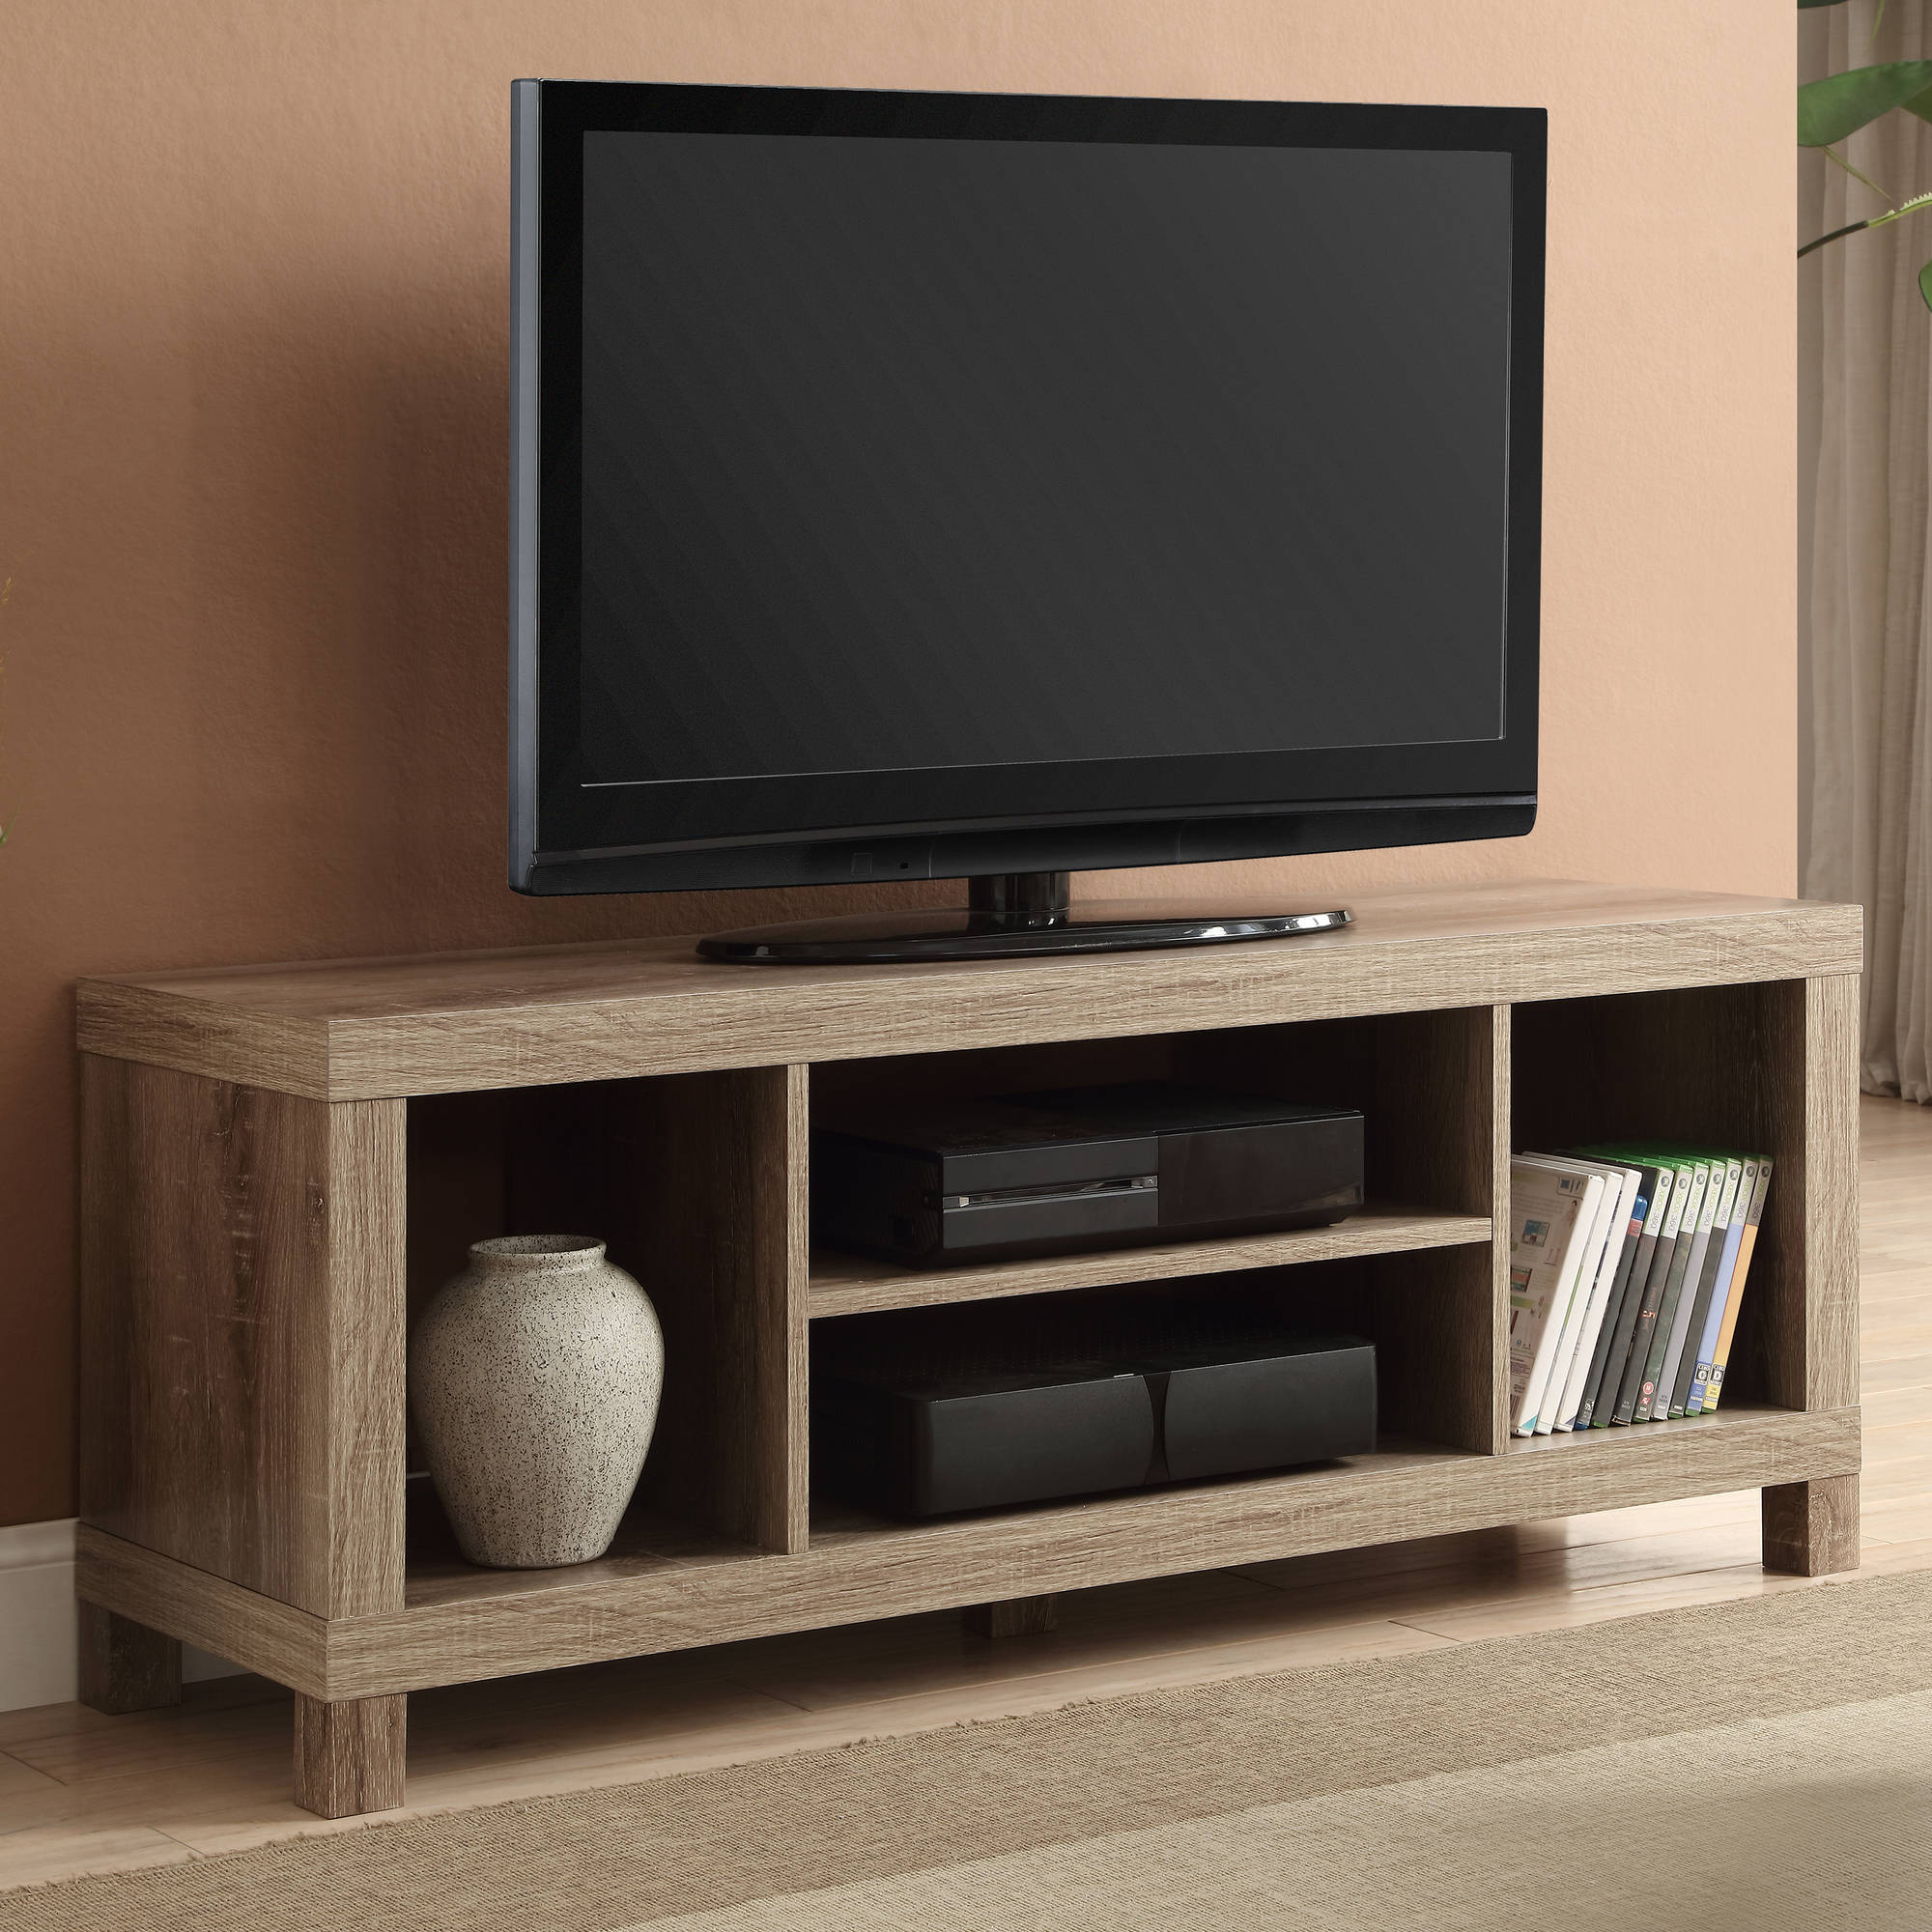 Tv Table Tv Stand Table For Flat Screen Living Room Furniture With